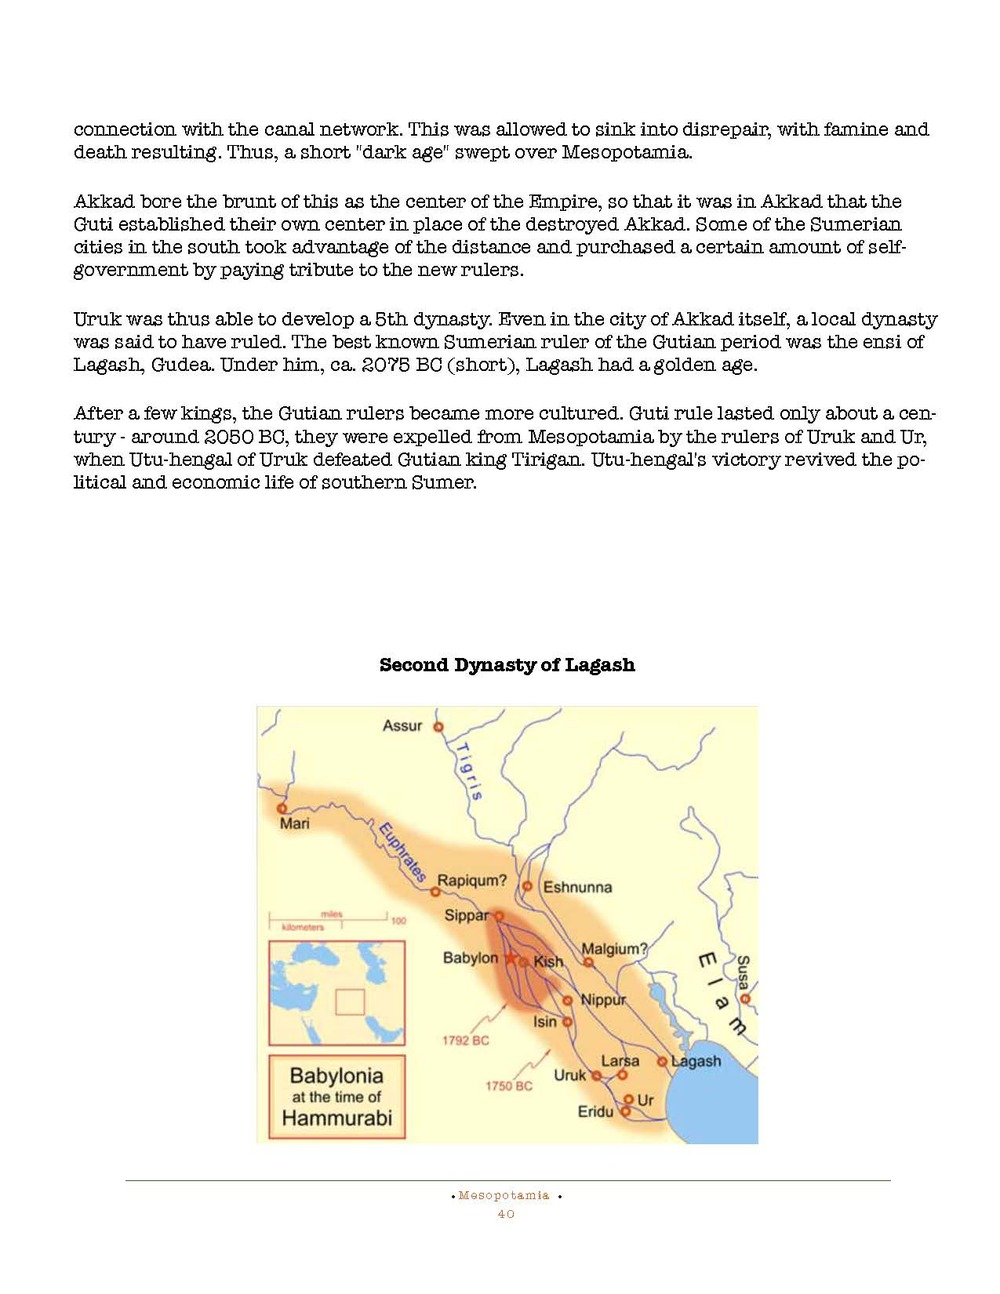 HOCE- Fertile Crescent Notes_Page_040.jpg